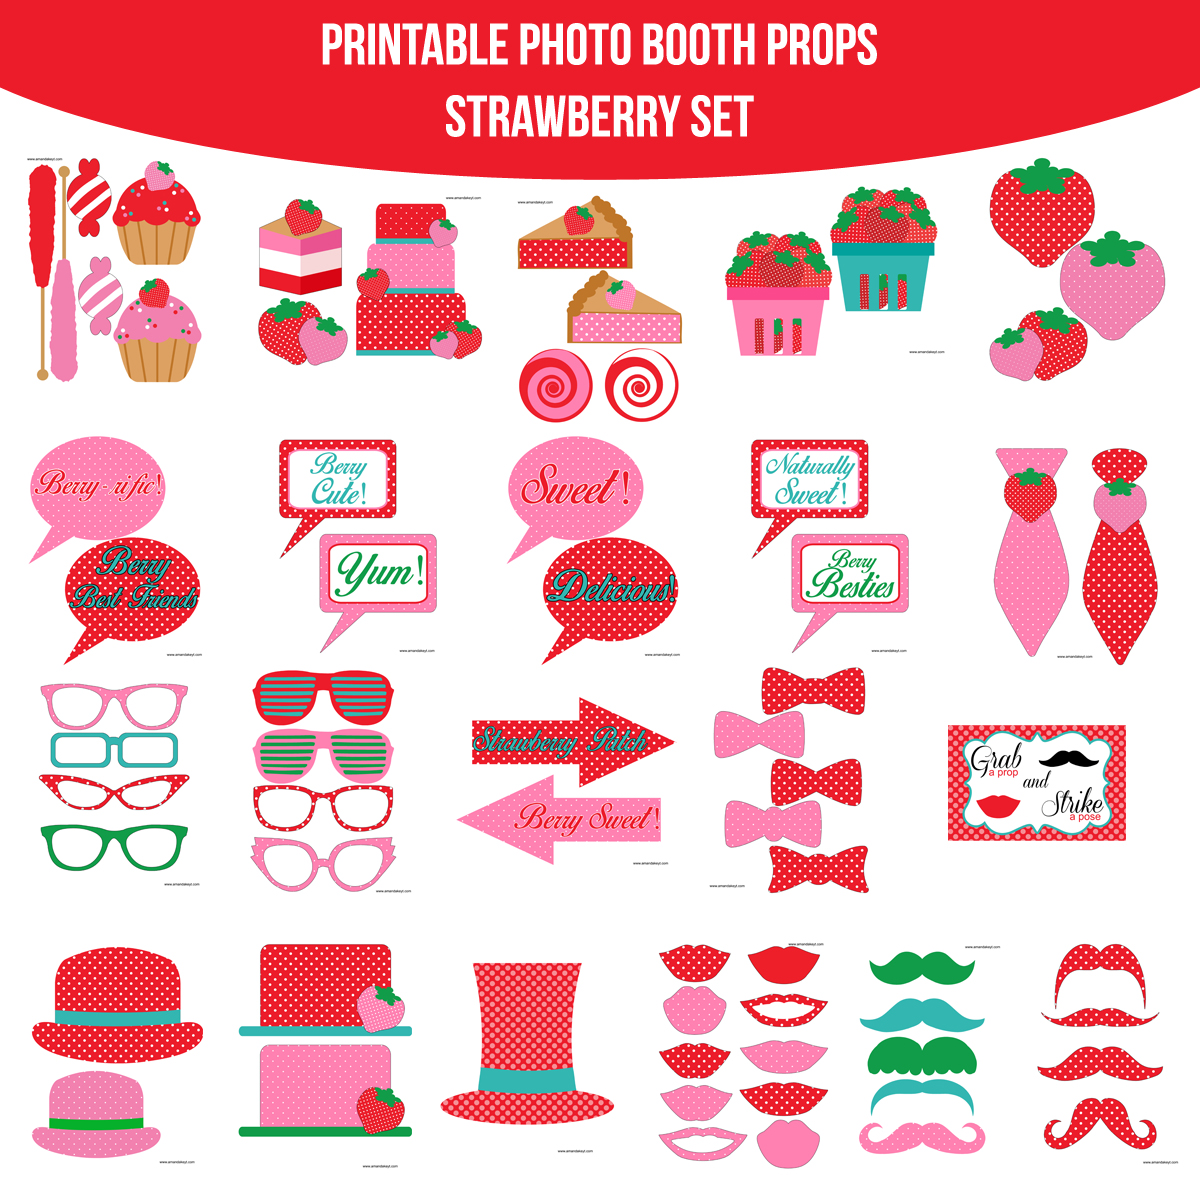 See the Set - To veiw the whole Strawberry Printable Photo Booth Prop Set click here